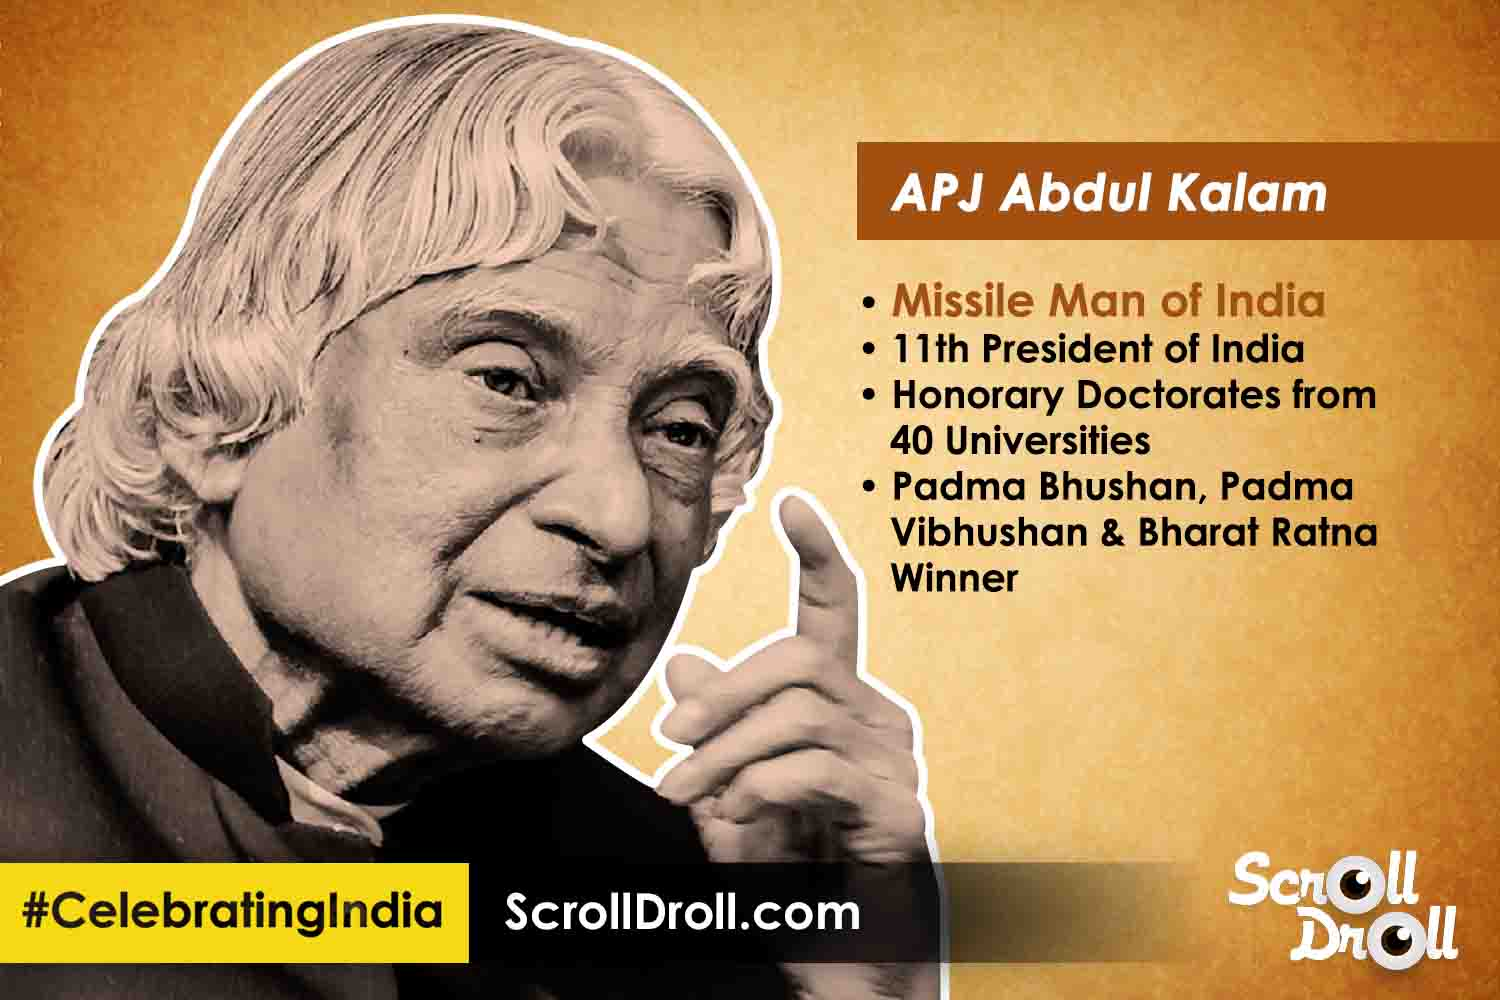 tamil essay in tamil language about abdul kalam Dr abdul kalam was born on 15 october 1931 in rameswaram, ramanathapuram district, tamil nadu, india his father jainulabudeen was a boat owner and imam of a local mosque his mother ashiamma was a housewifeeven though his ancestors had been wealthy traders, the family had lost most of its fortunes by the 1920s and was poverty-stricken by the .